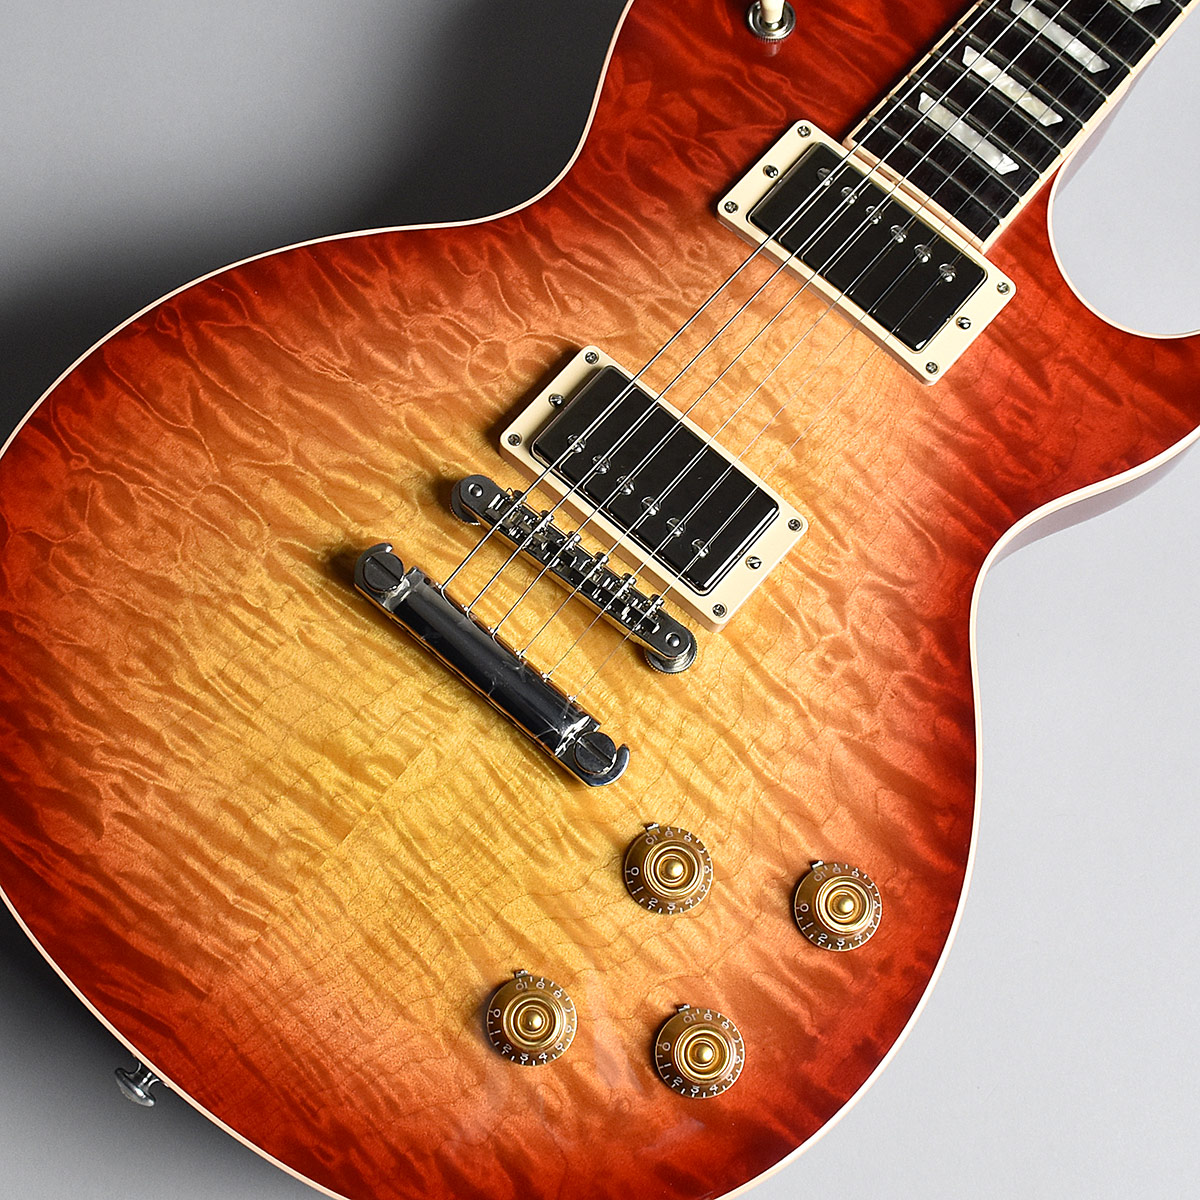 Gibson Les Paul Traditional Plus Quilt 2017 Limited Heritage Cherry Sunburst S/N:170073143 【ギブソン】【未展示品】